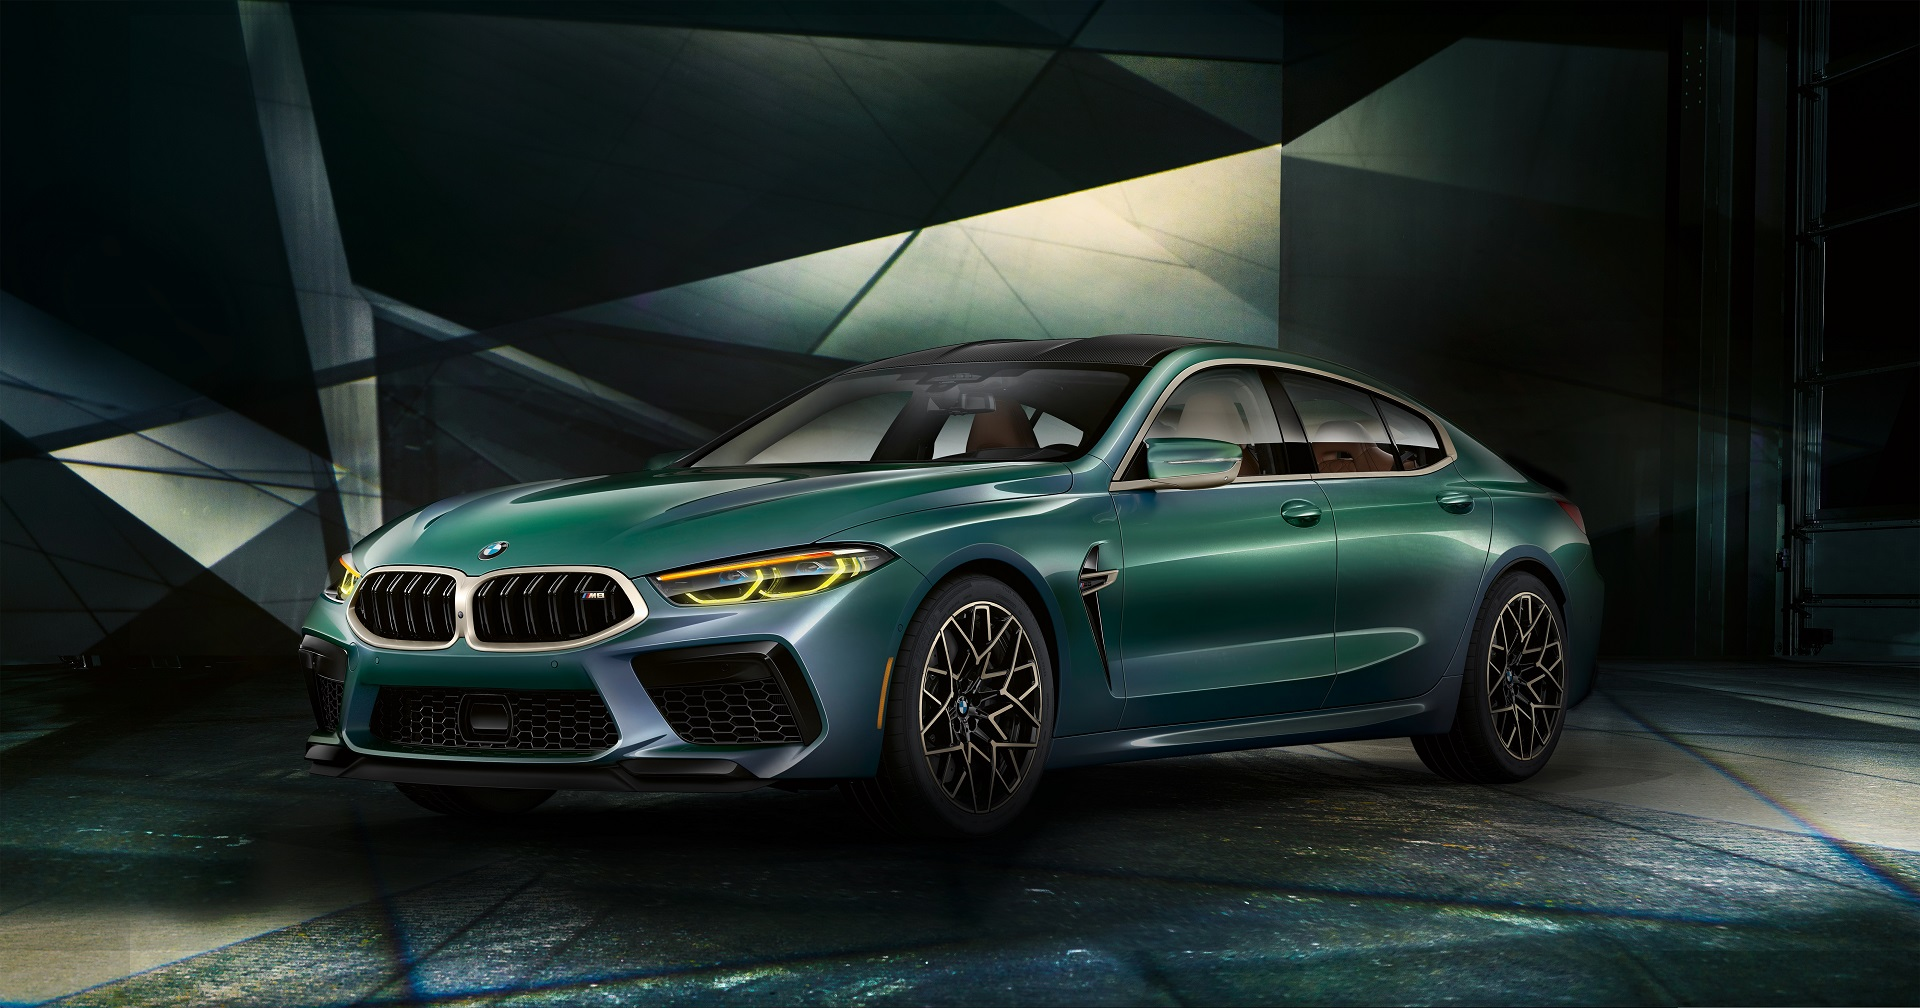 Photo Gallery: BMW M8 Gran Coupe First Edition